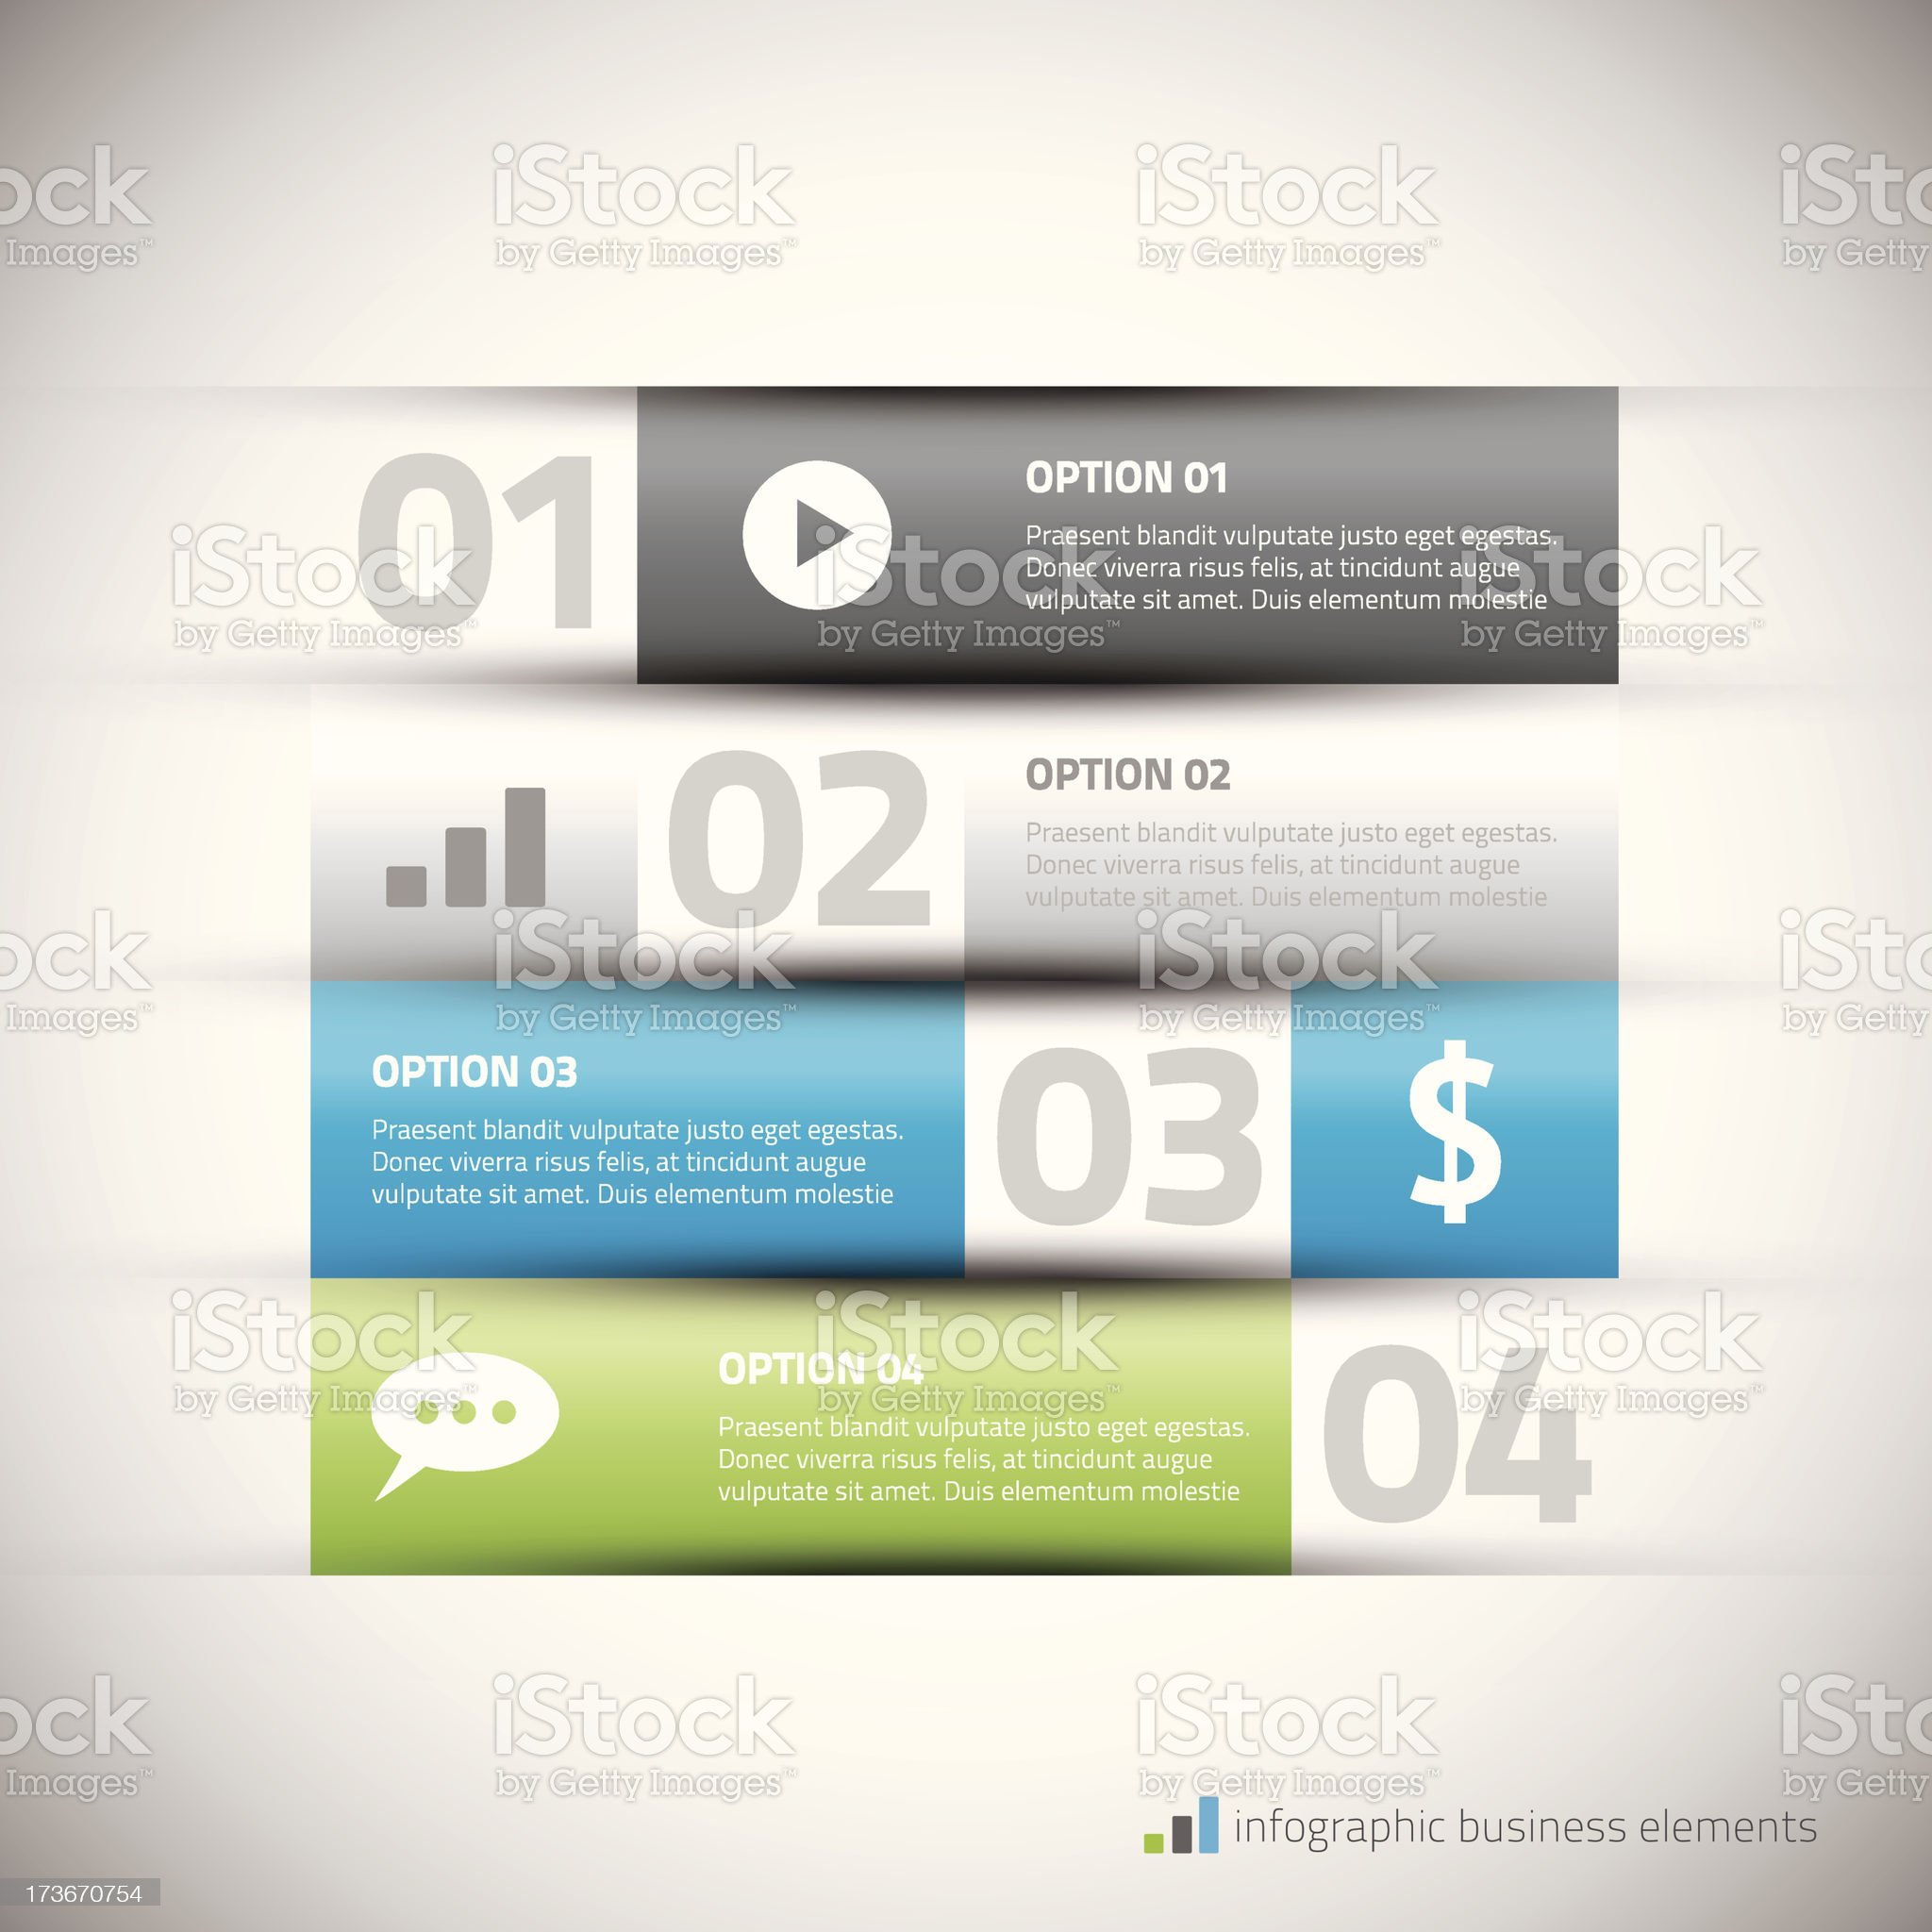 Modern infographic elements with sample text vector illustration royalty-free stock vector art